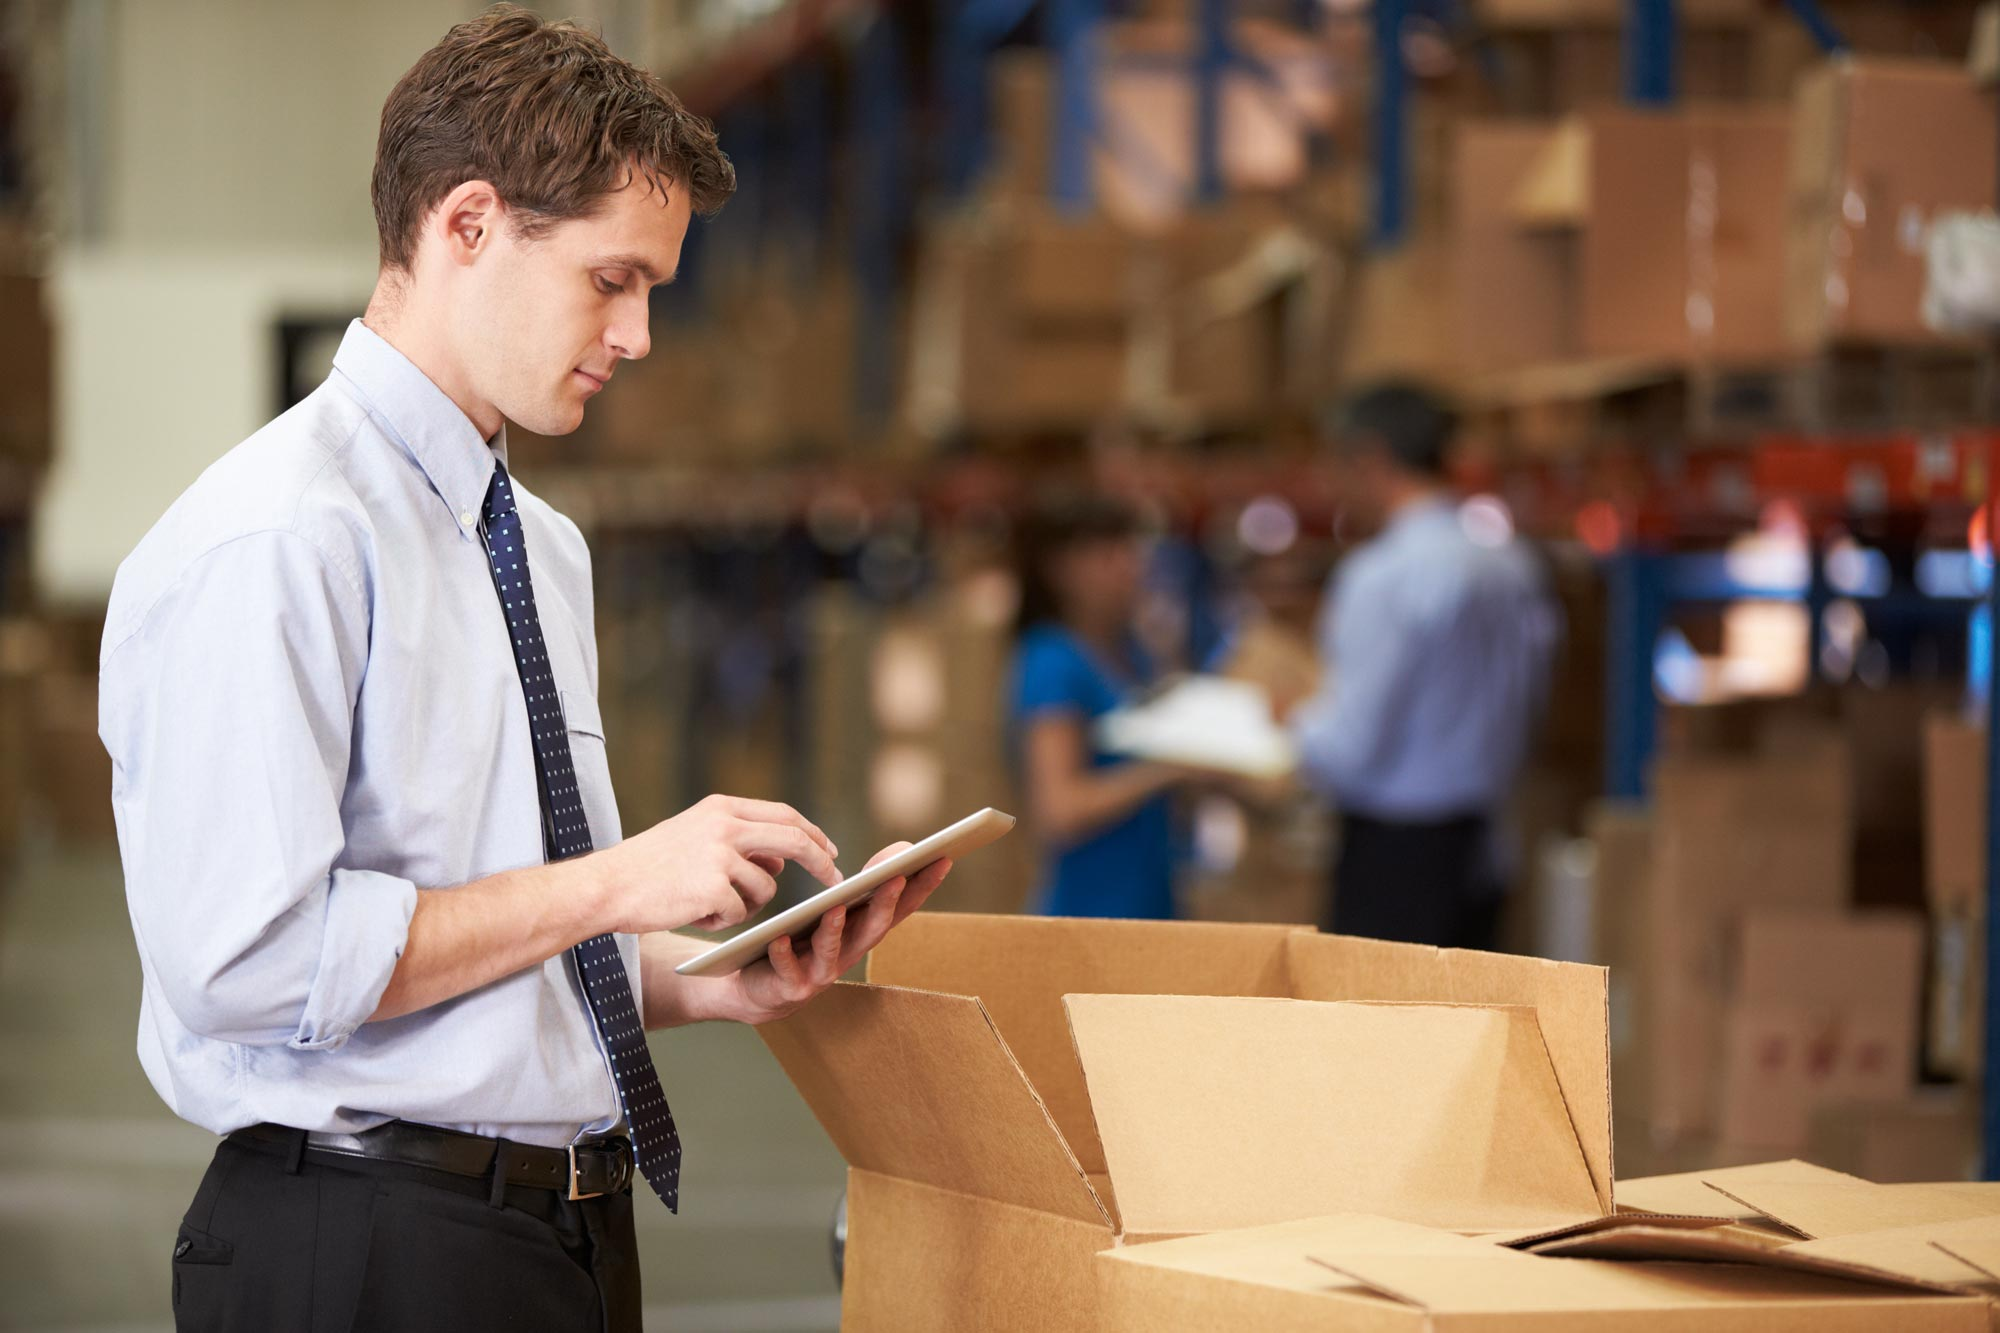 Manager-In-Warehouse-Checking-Boxes-Using-Digital-Tablet22.jpg